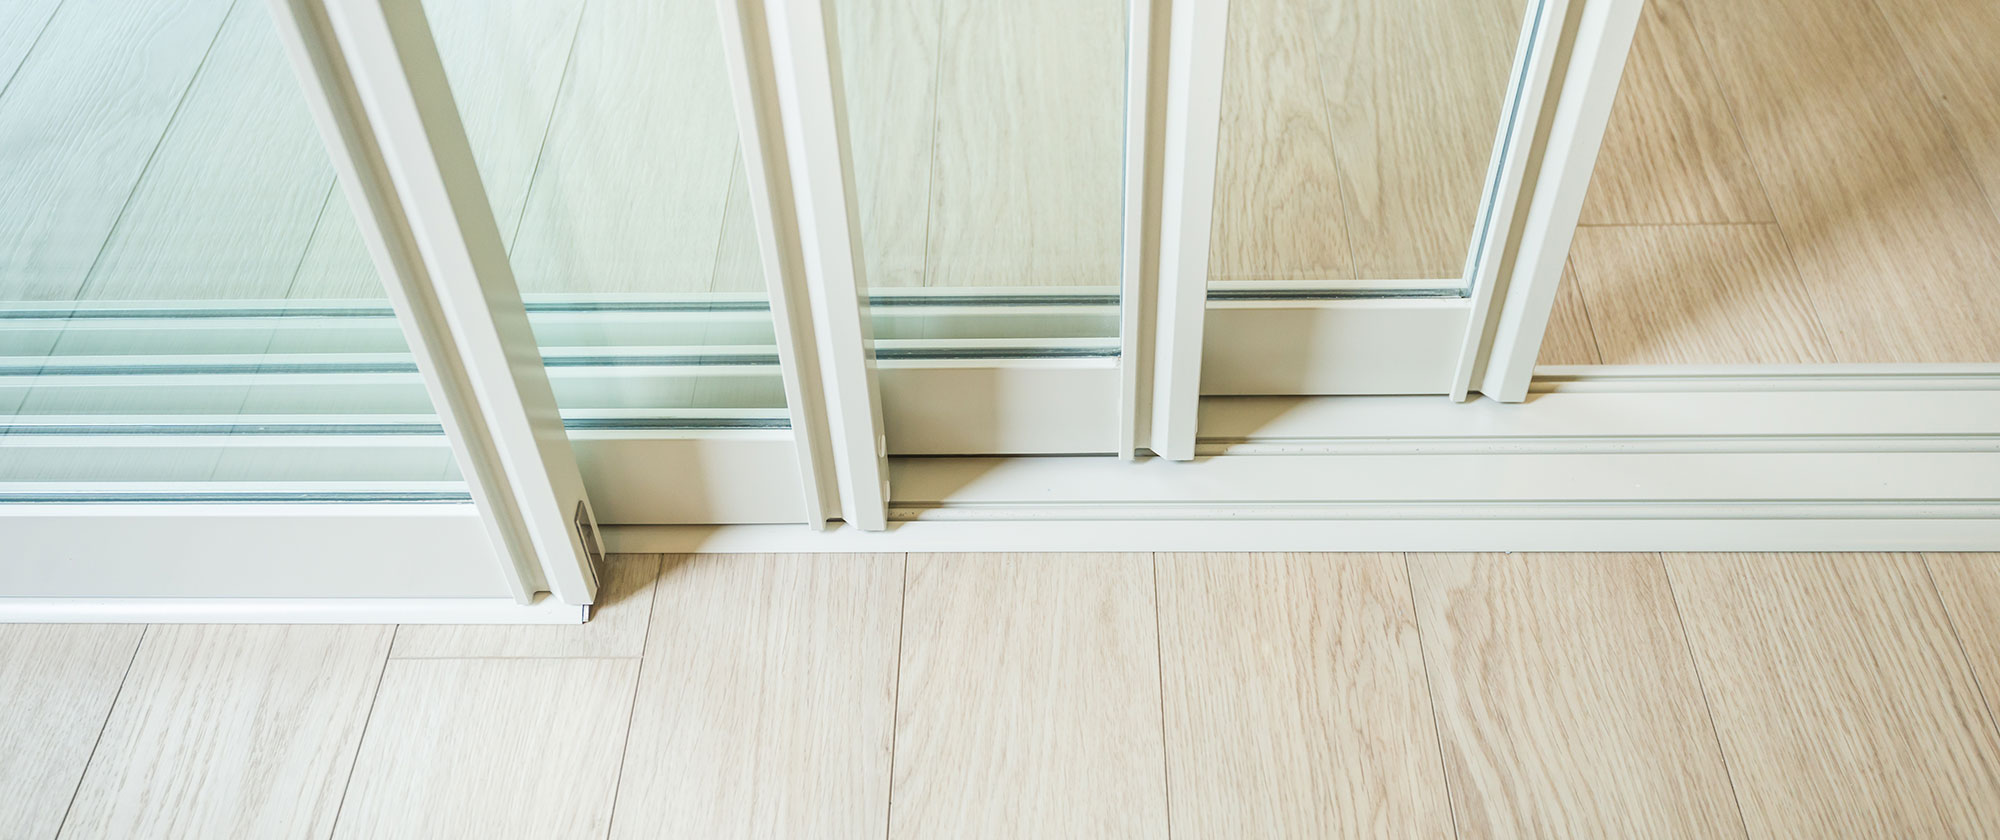 How To Prevent Water Intrusion On Sliding Glass Doors